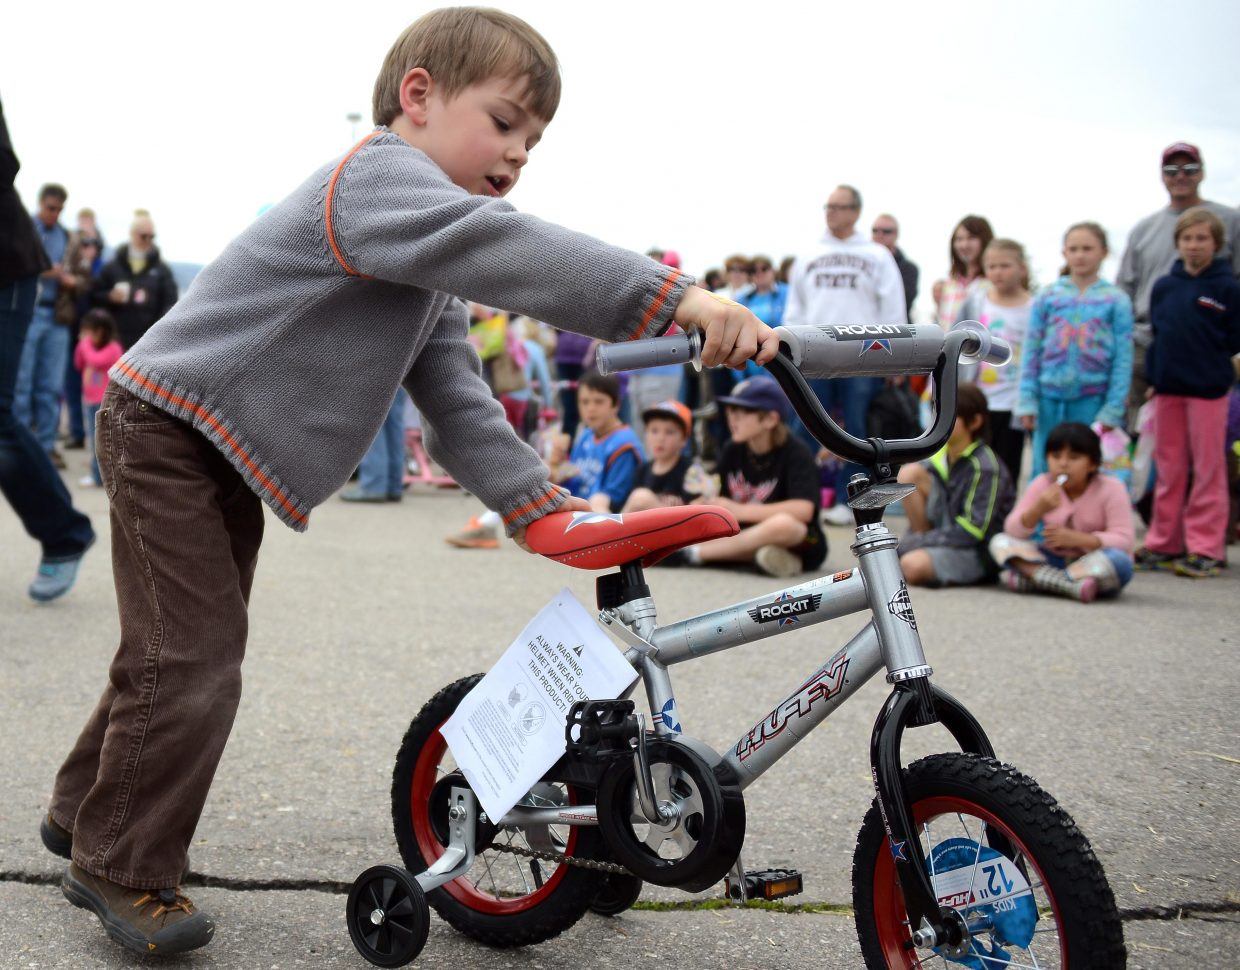 Jackson Tormey, 4, won a bike Saturday at the Easter Eggstravaganza at the Meadows parking lot in Steamboat Springs.